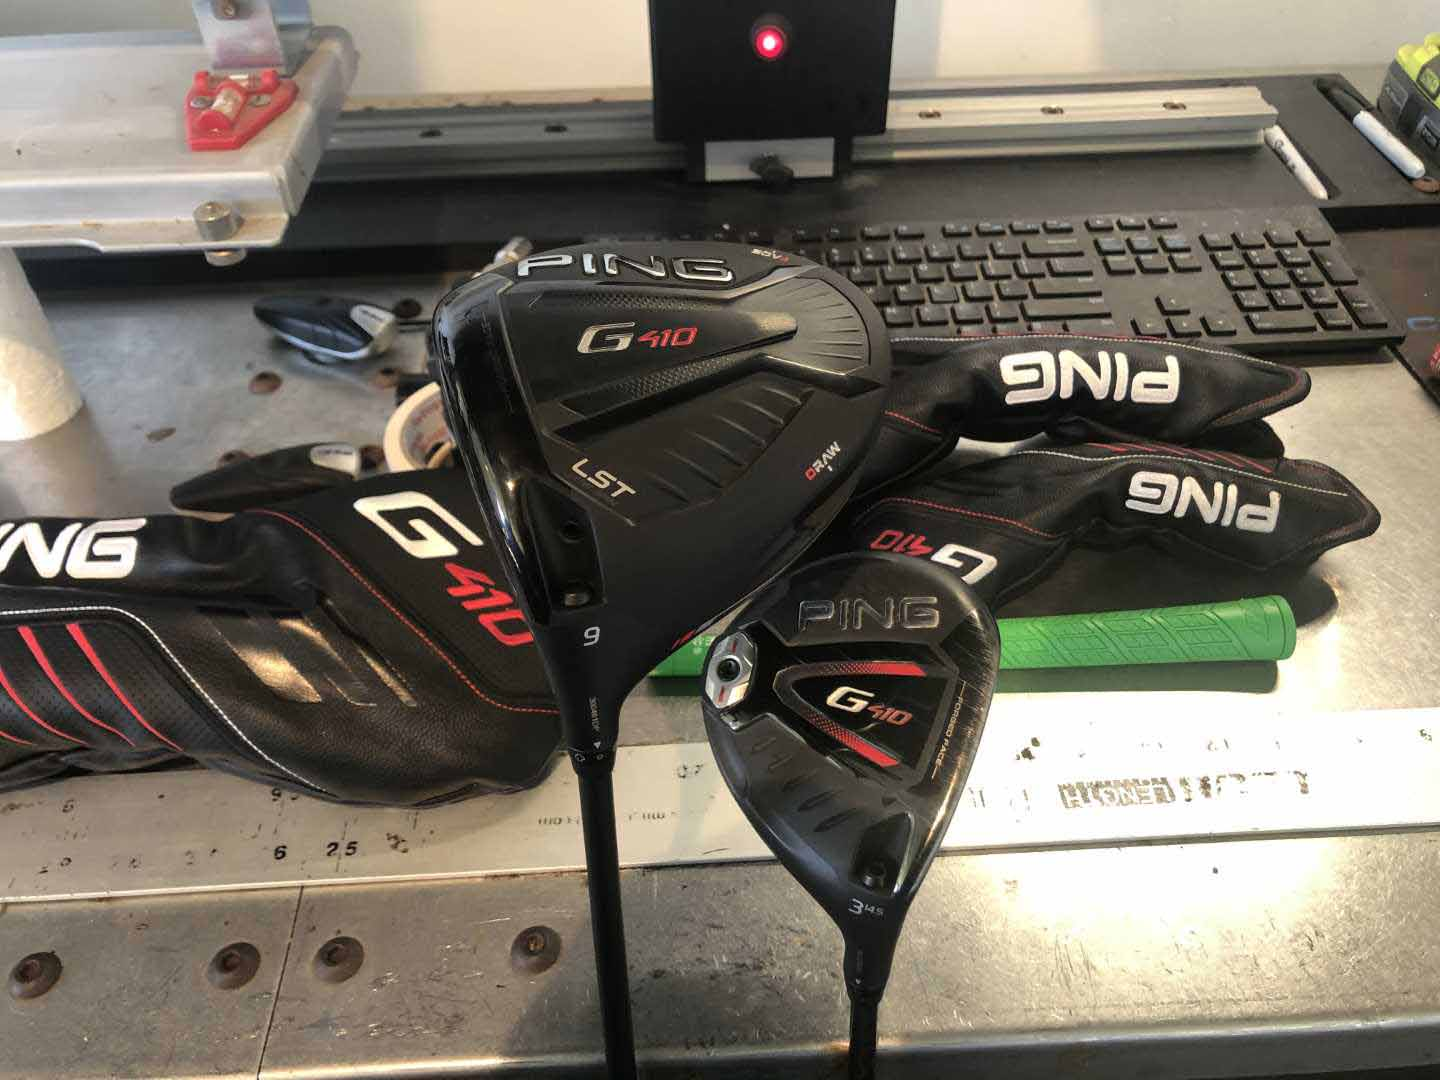 More in-house Ping builds in our Sydney location. One new G410 driver and a re-shaft of a G410 Fairway. Both with SST Pured shafts.